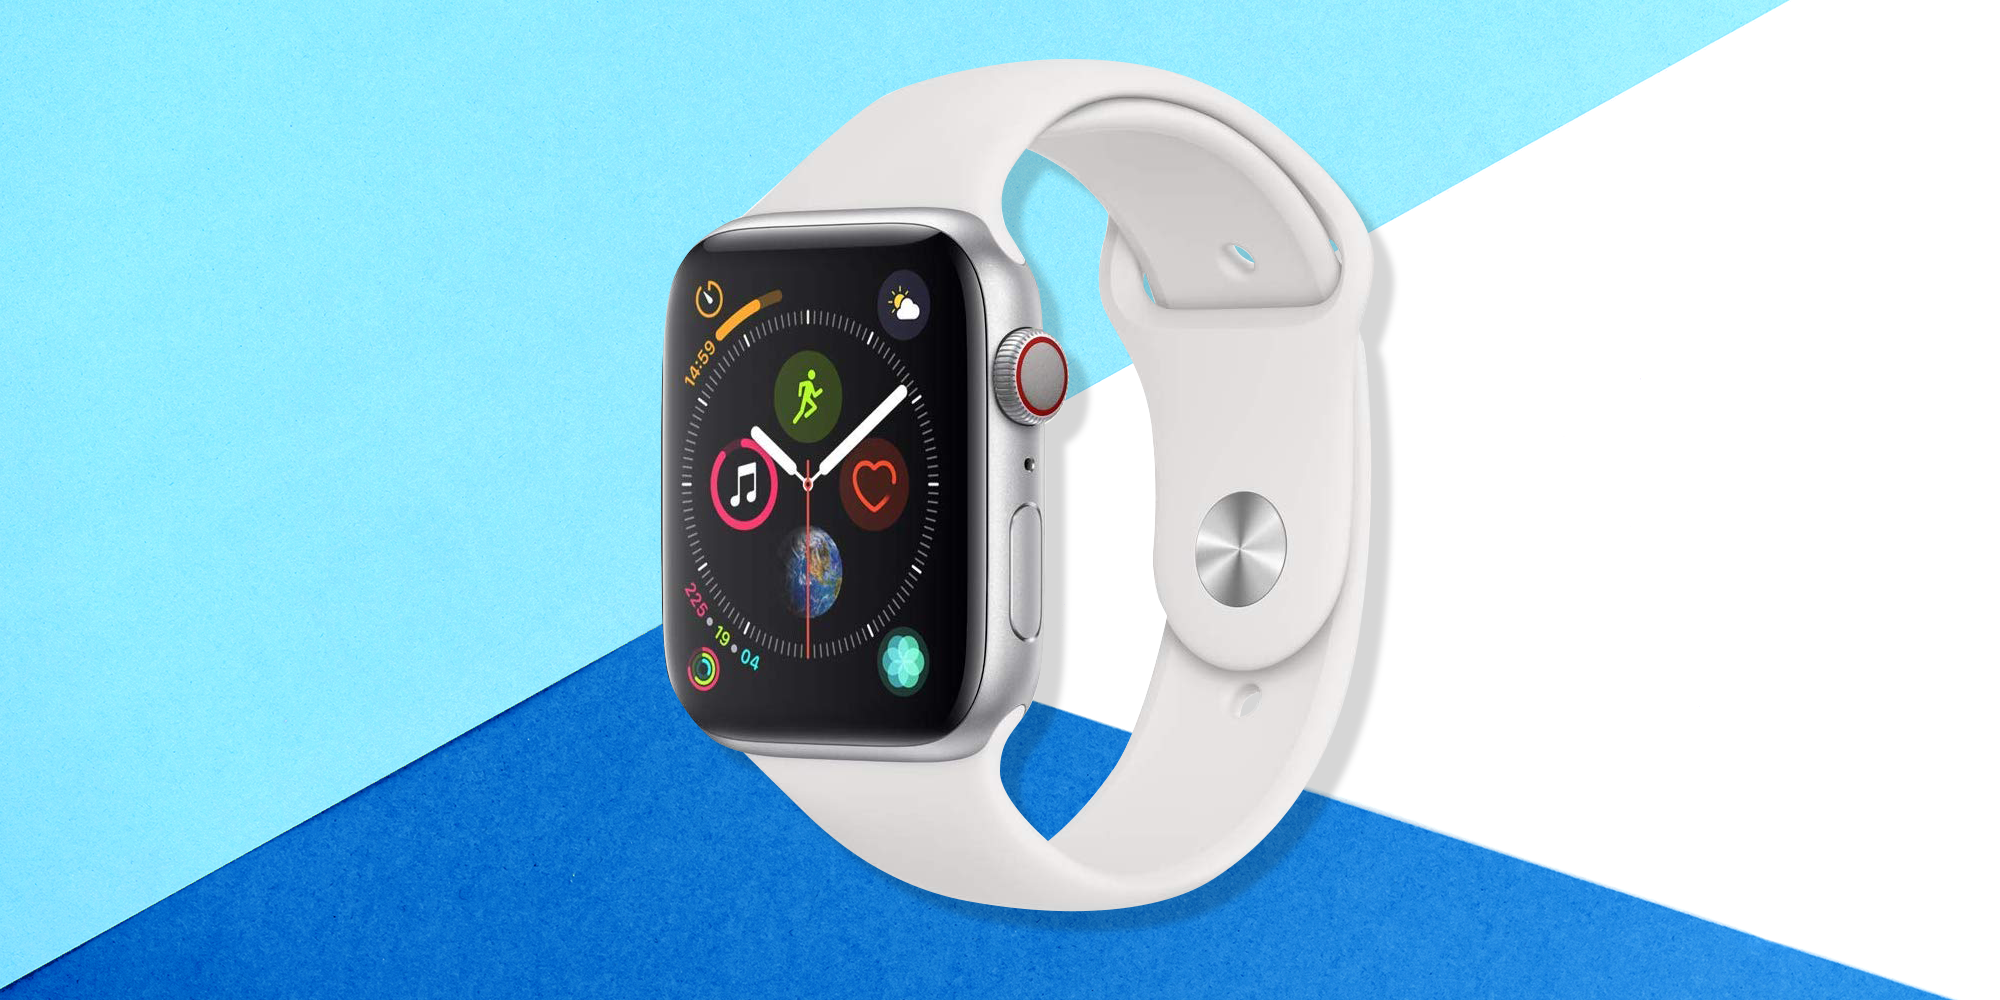 The Apple Watch Series 4 Is On Sale On Amazon For An All-Time Low Price Of $129 Off Right Now